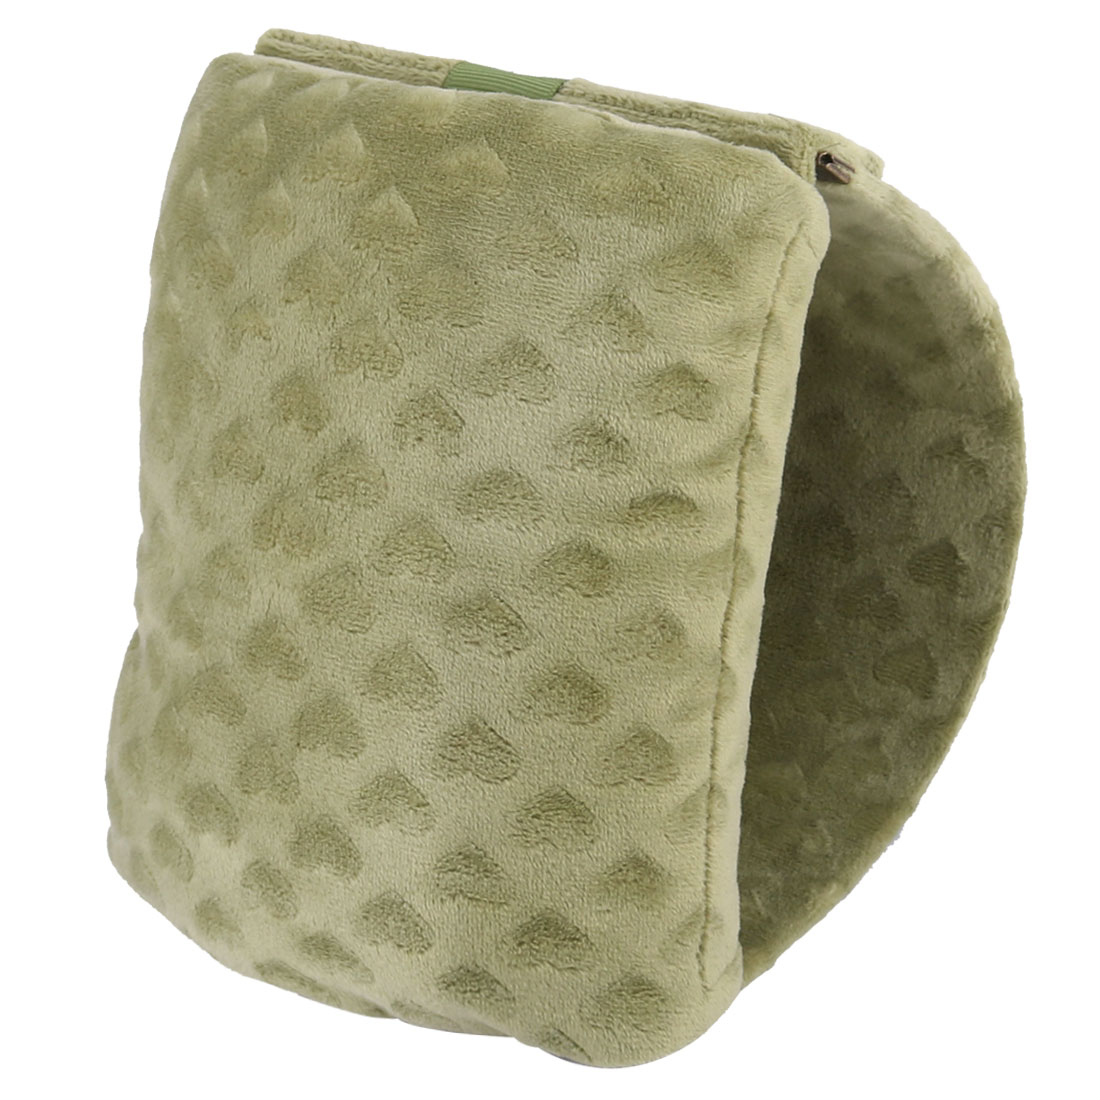 Office Desk Plush Coated Portable Travel Sleep Nap Pillow Cushion Olive Green